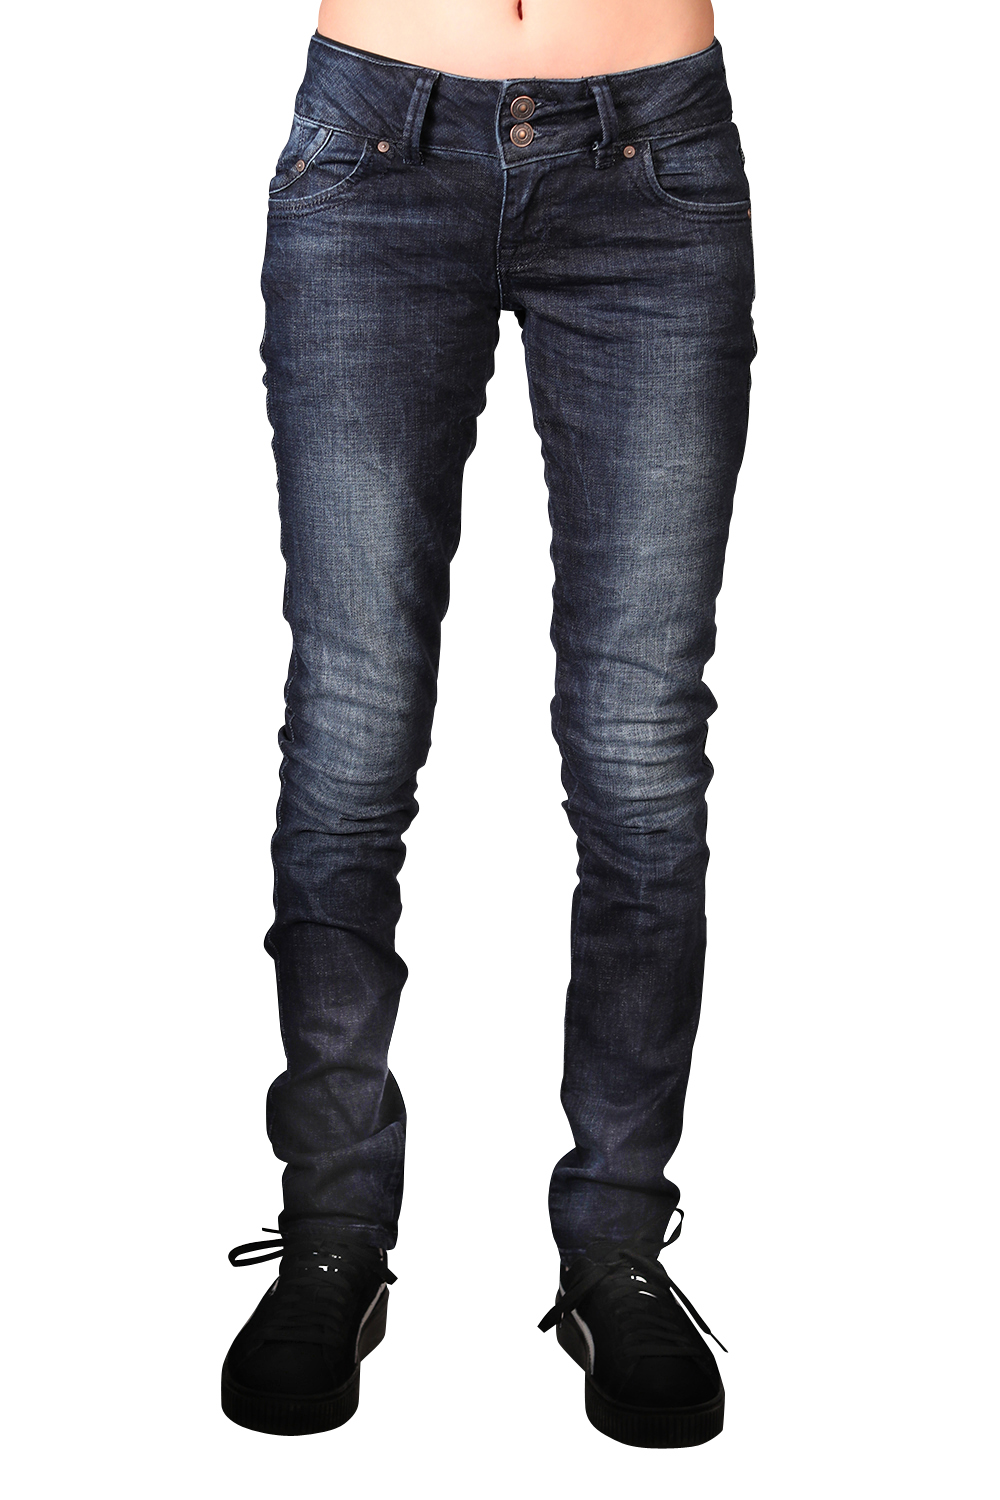 Kleidung & Accessoires LTB Stretch Jeans 5065 50331 MOLLY